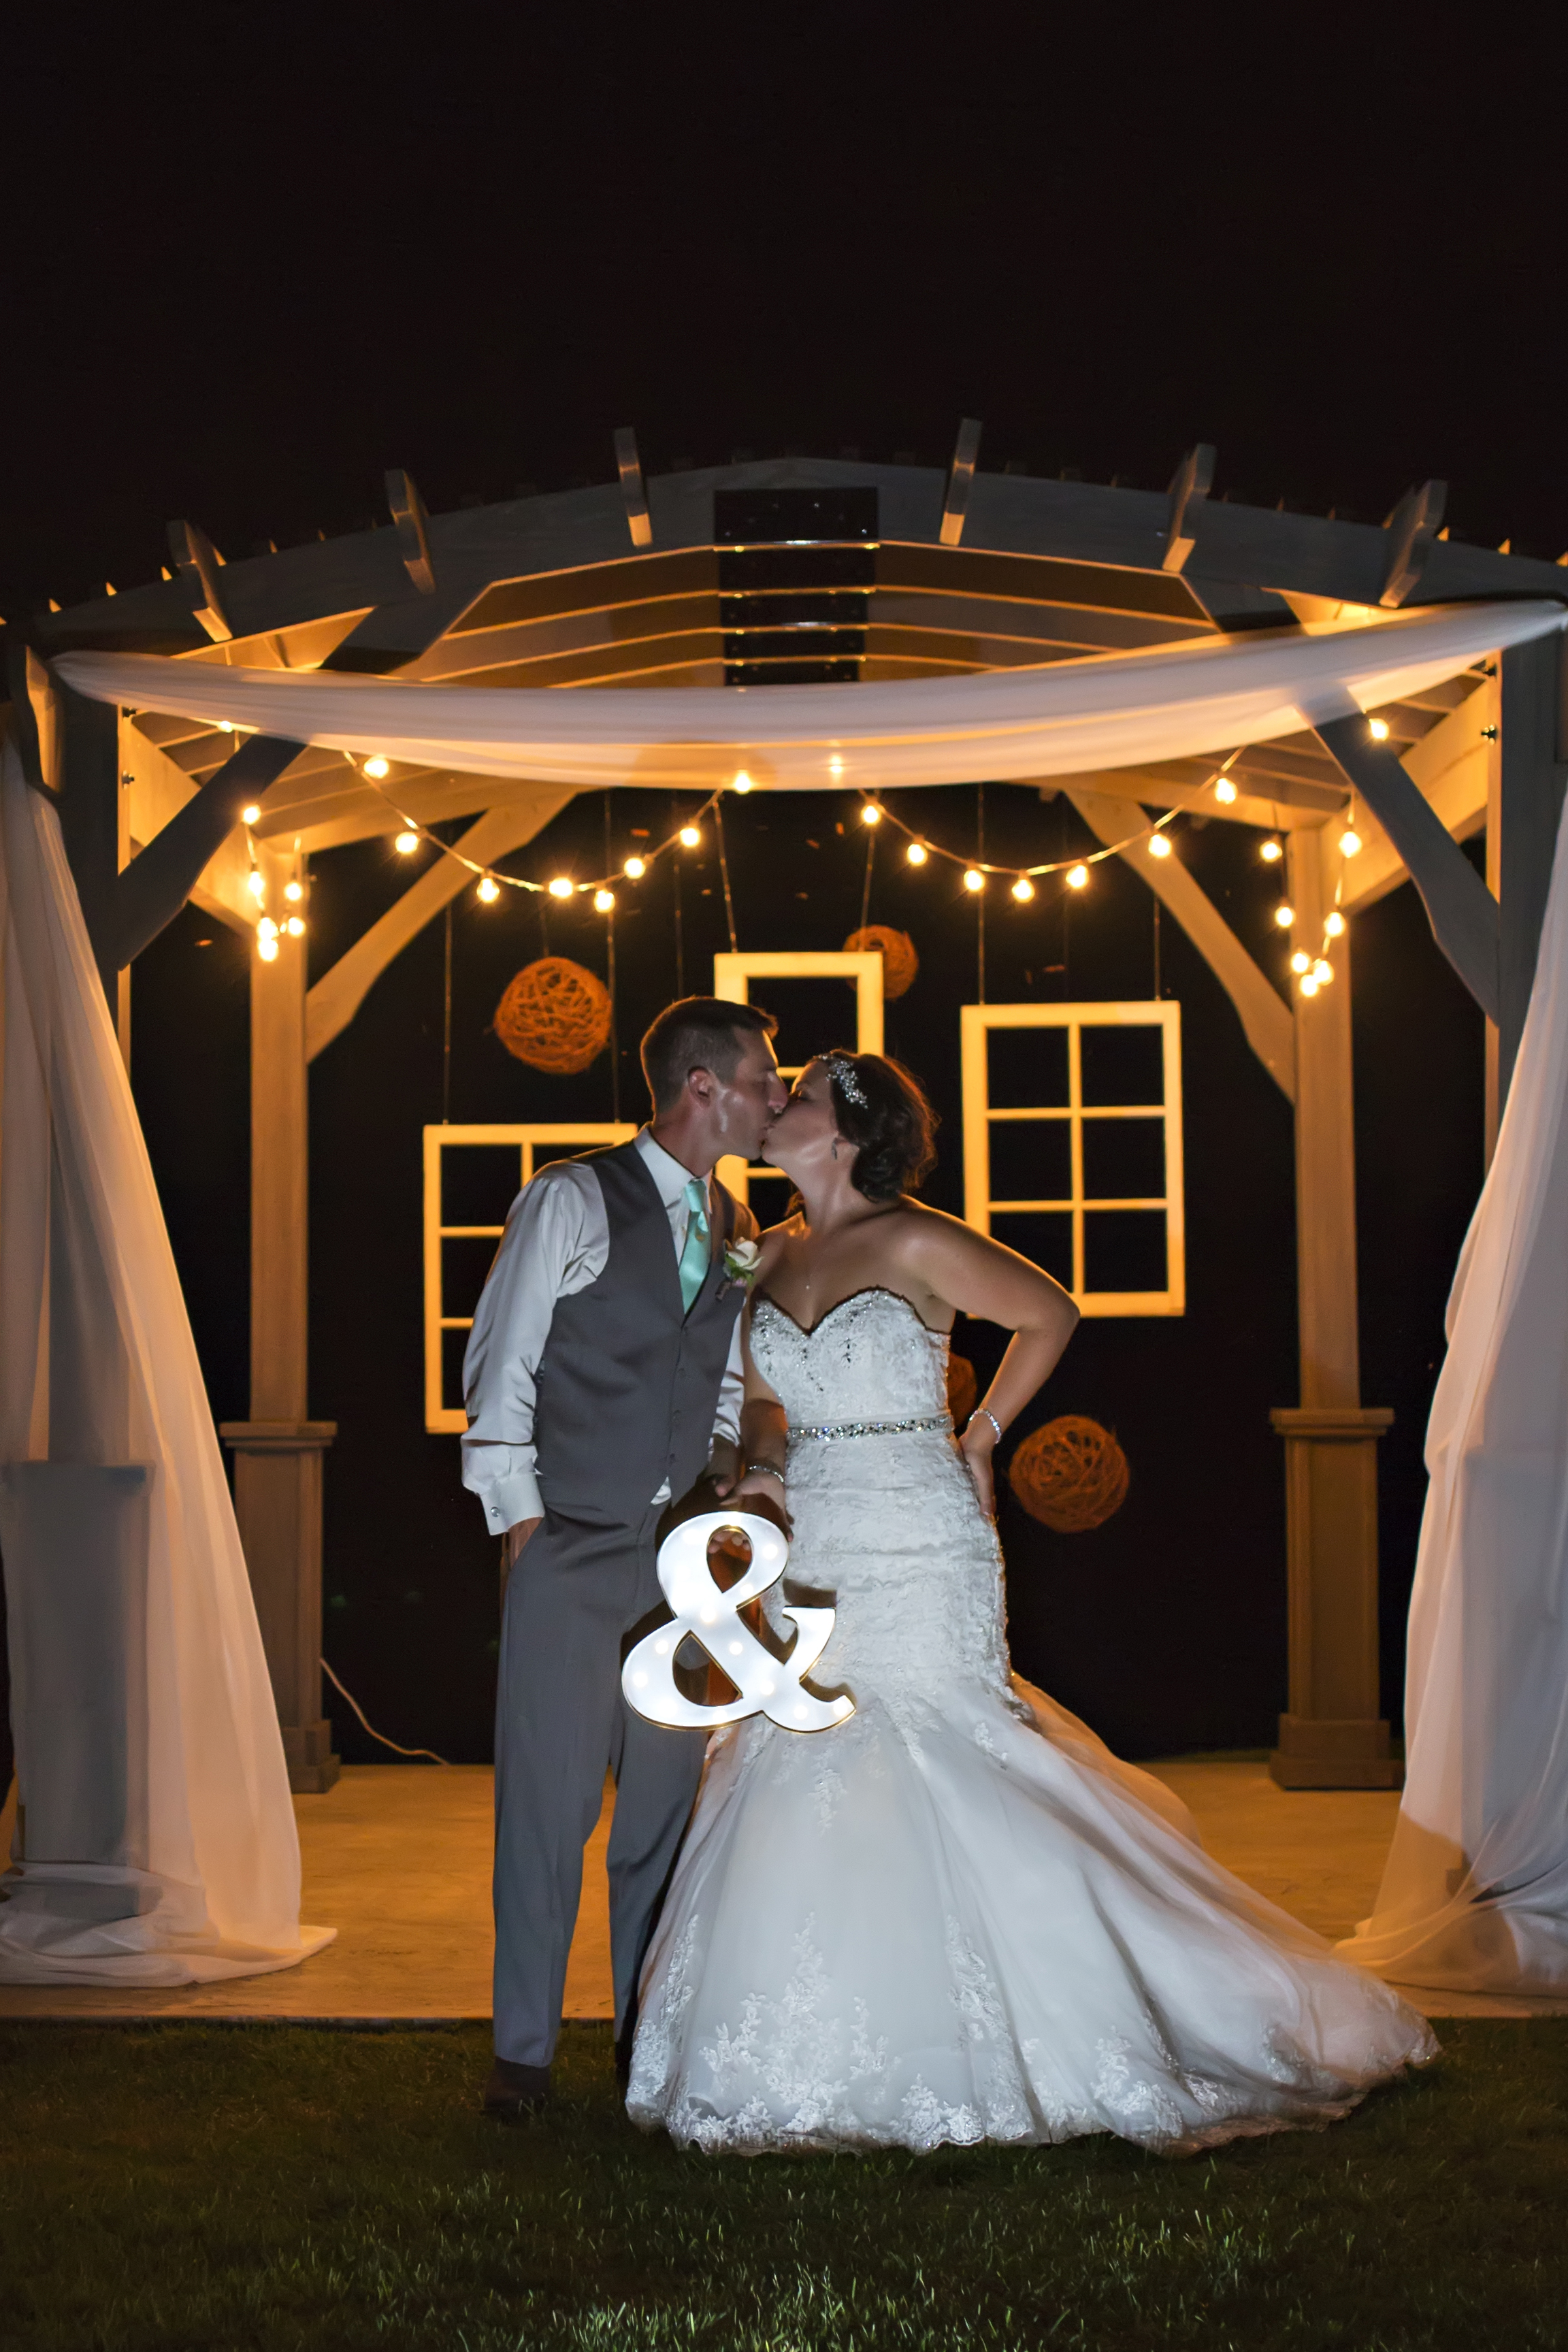 bride-groom-pergola-night-marquee-lights.jpg